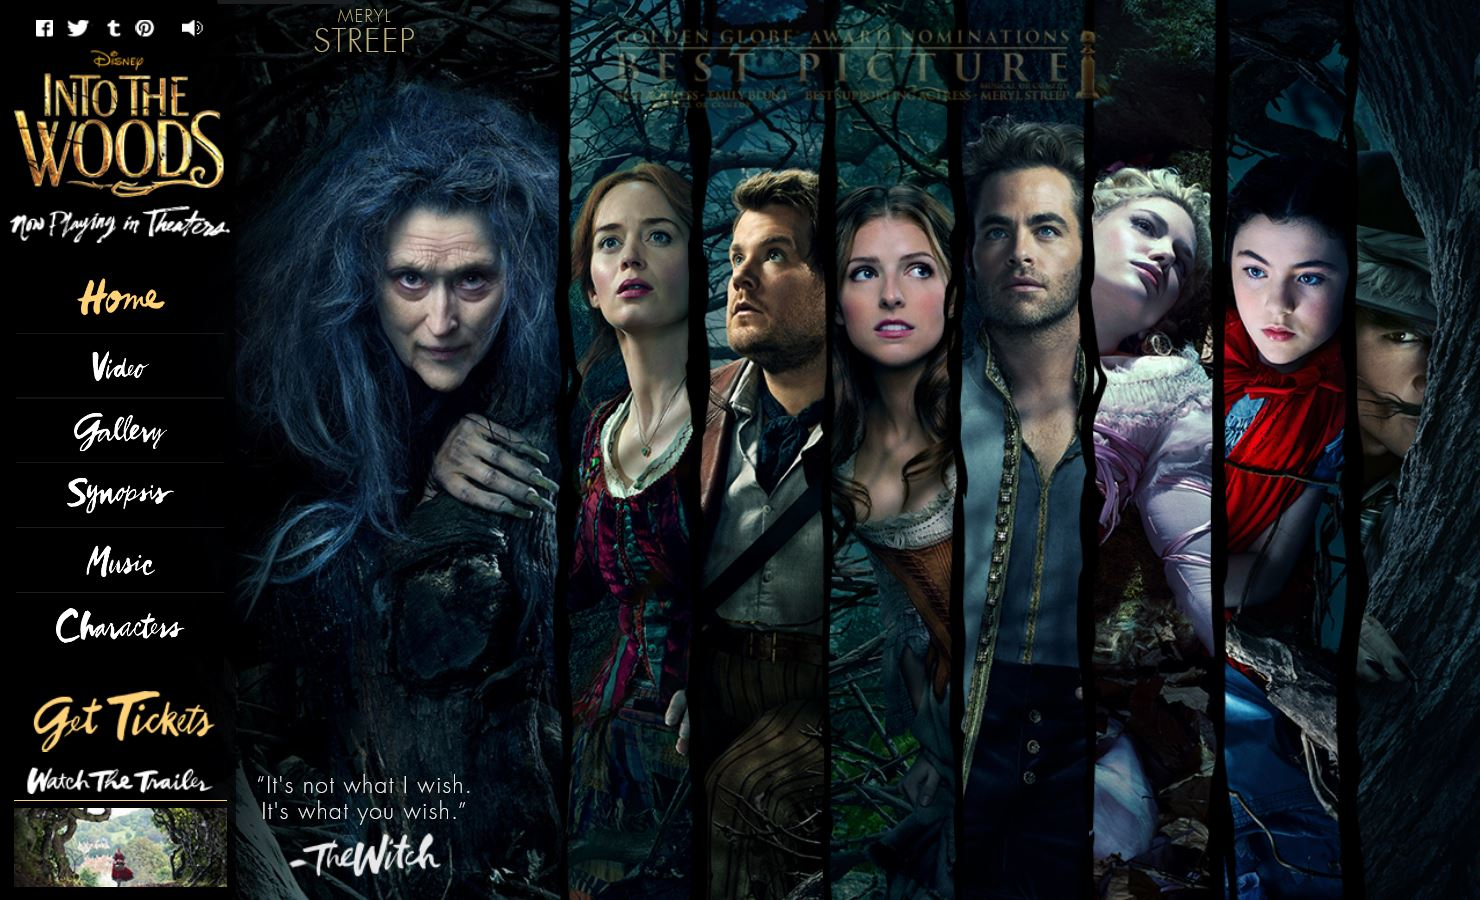 Into the Woods – tinlizzieridesagain